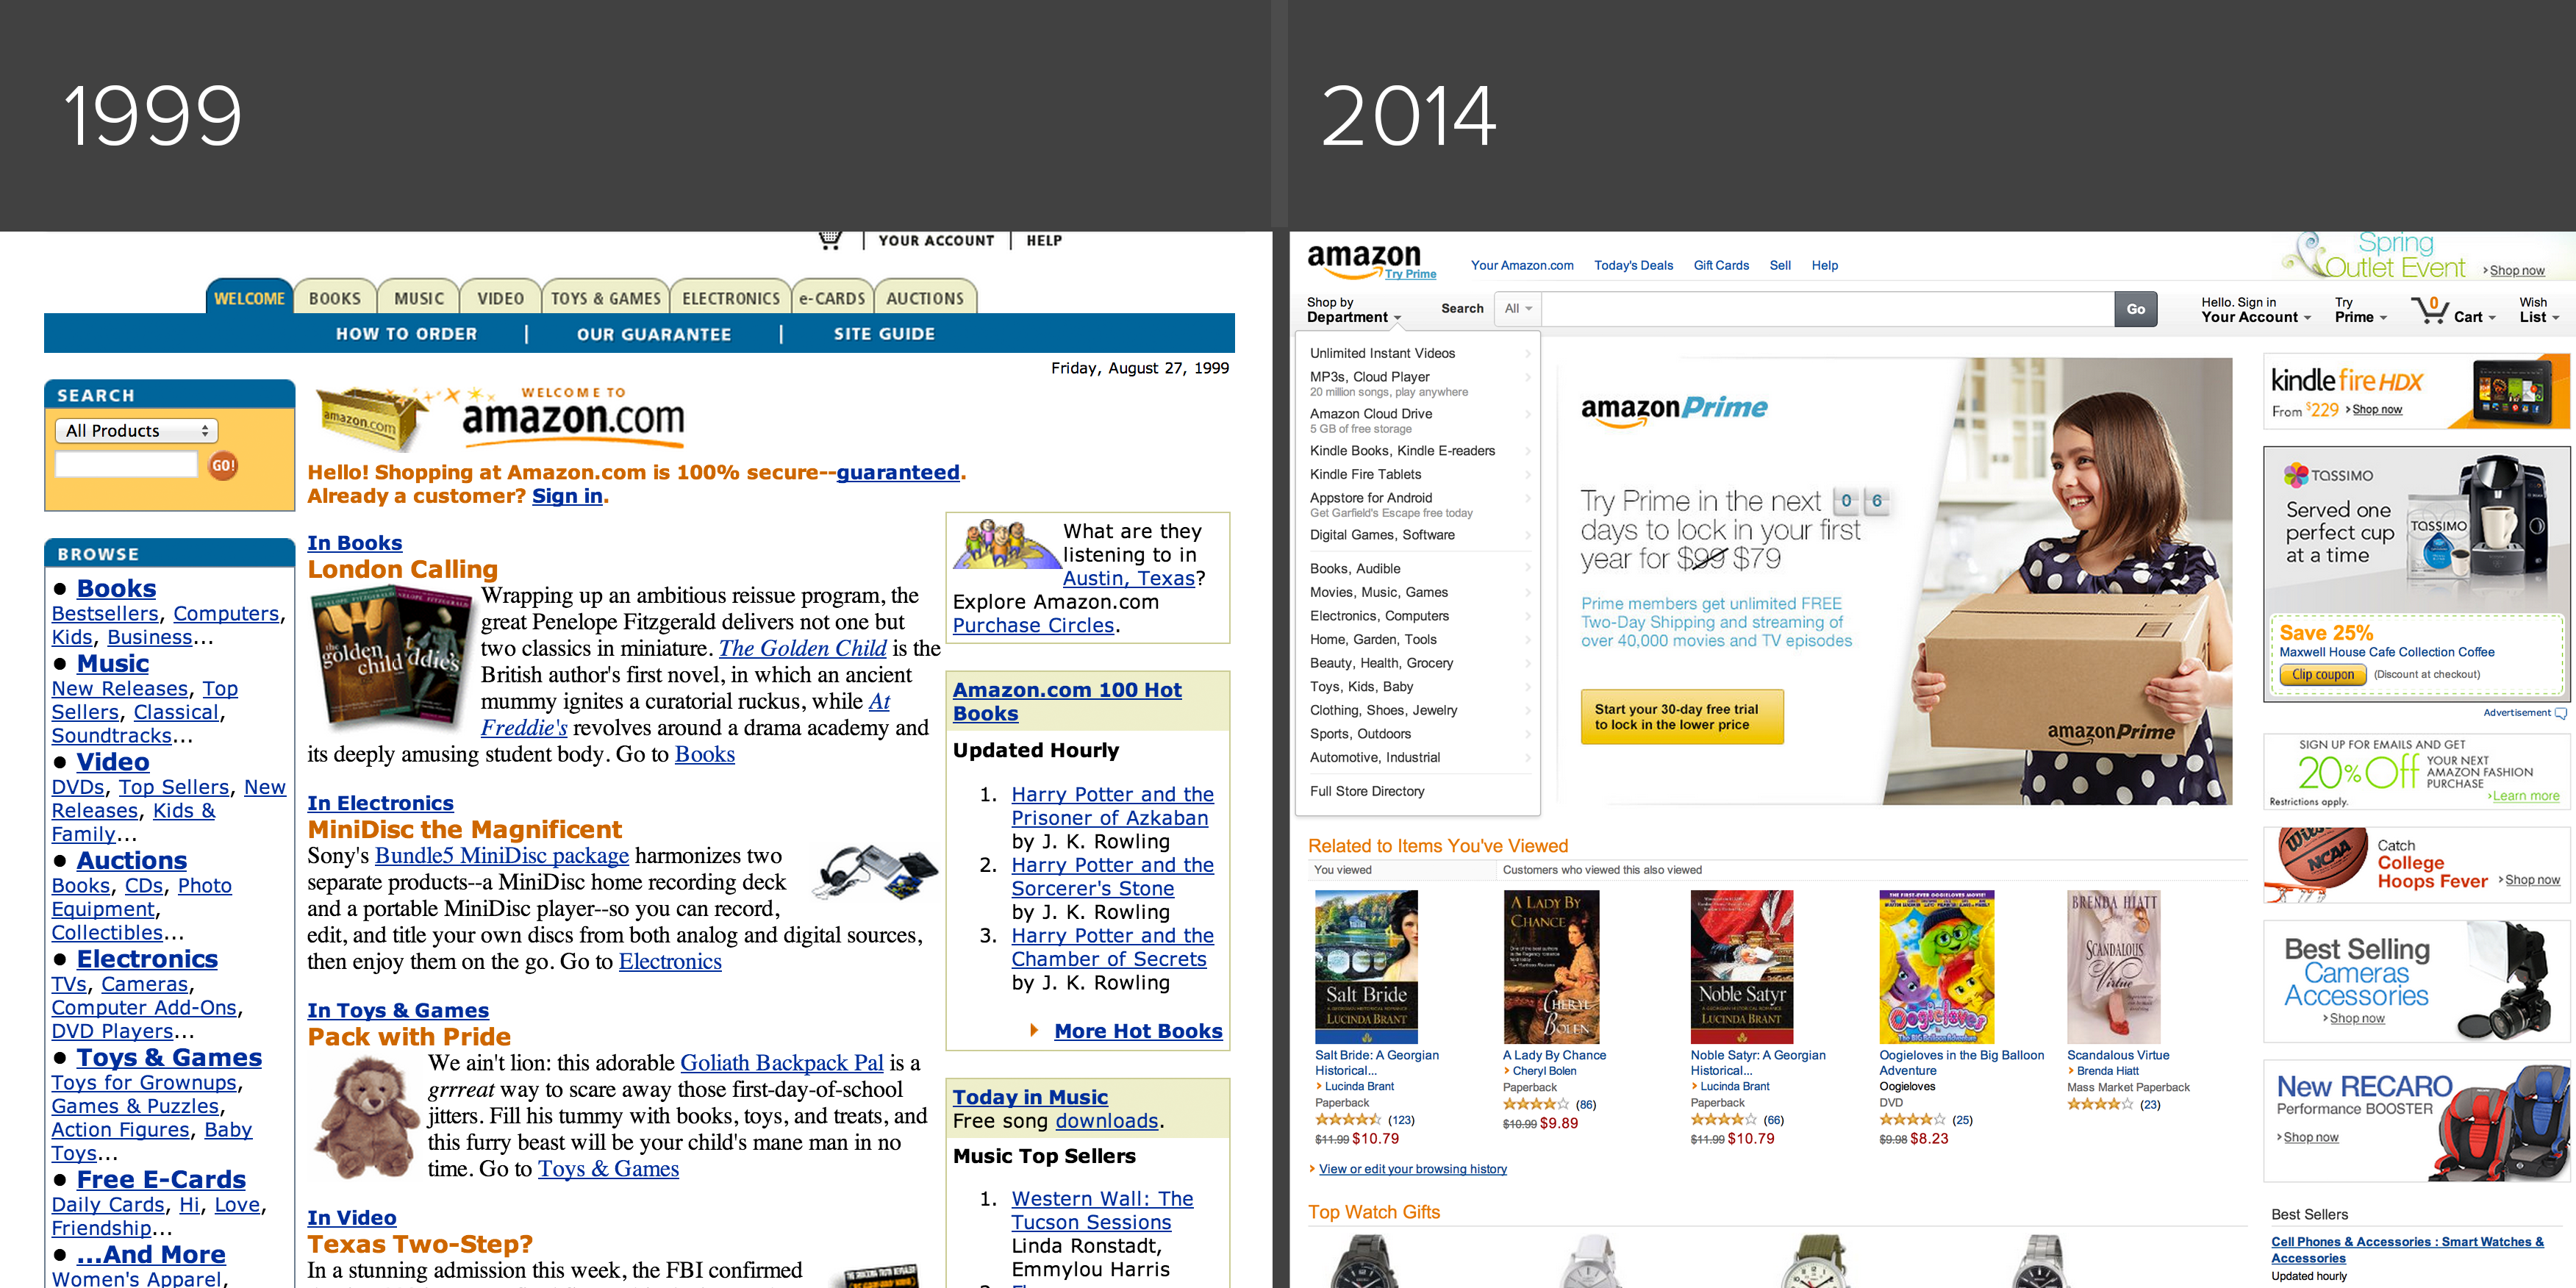 Amazon_Then_and_Now